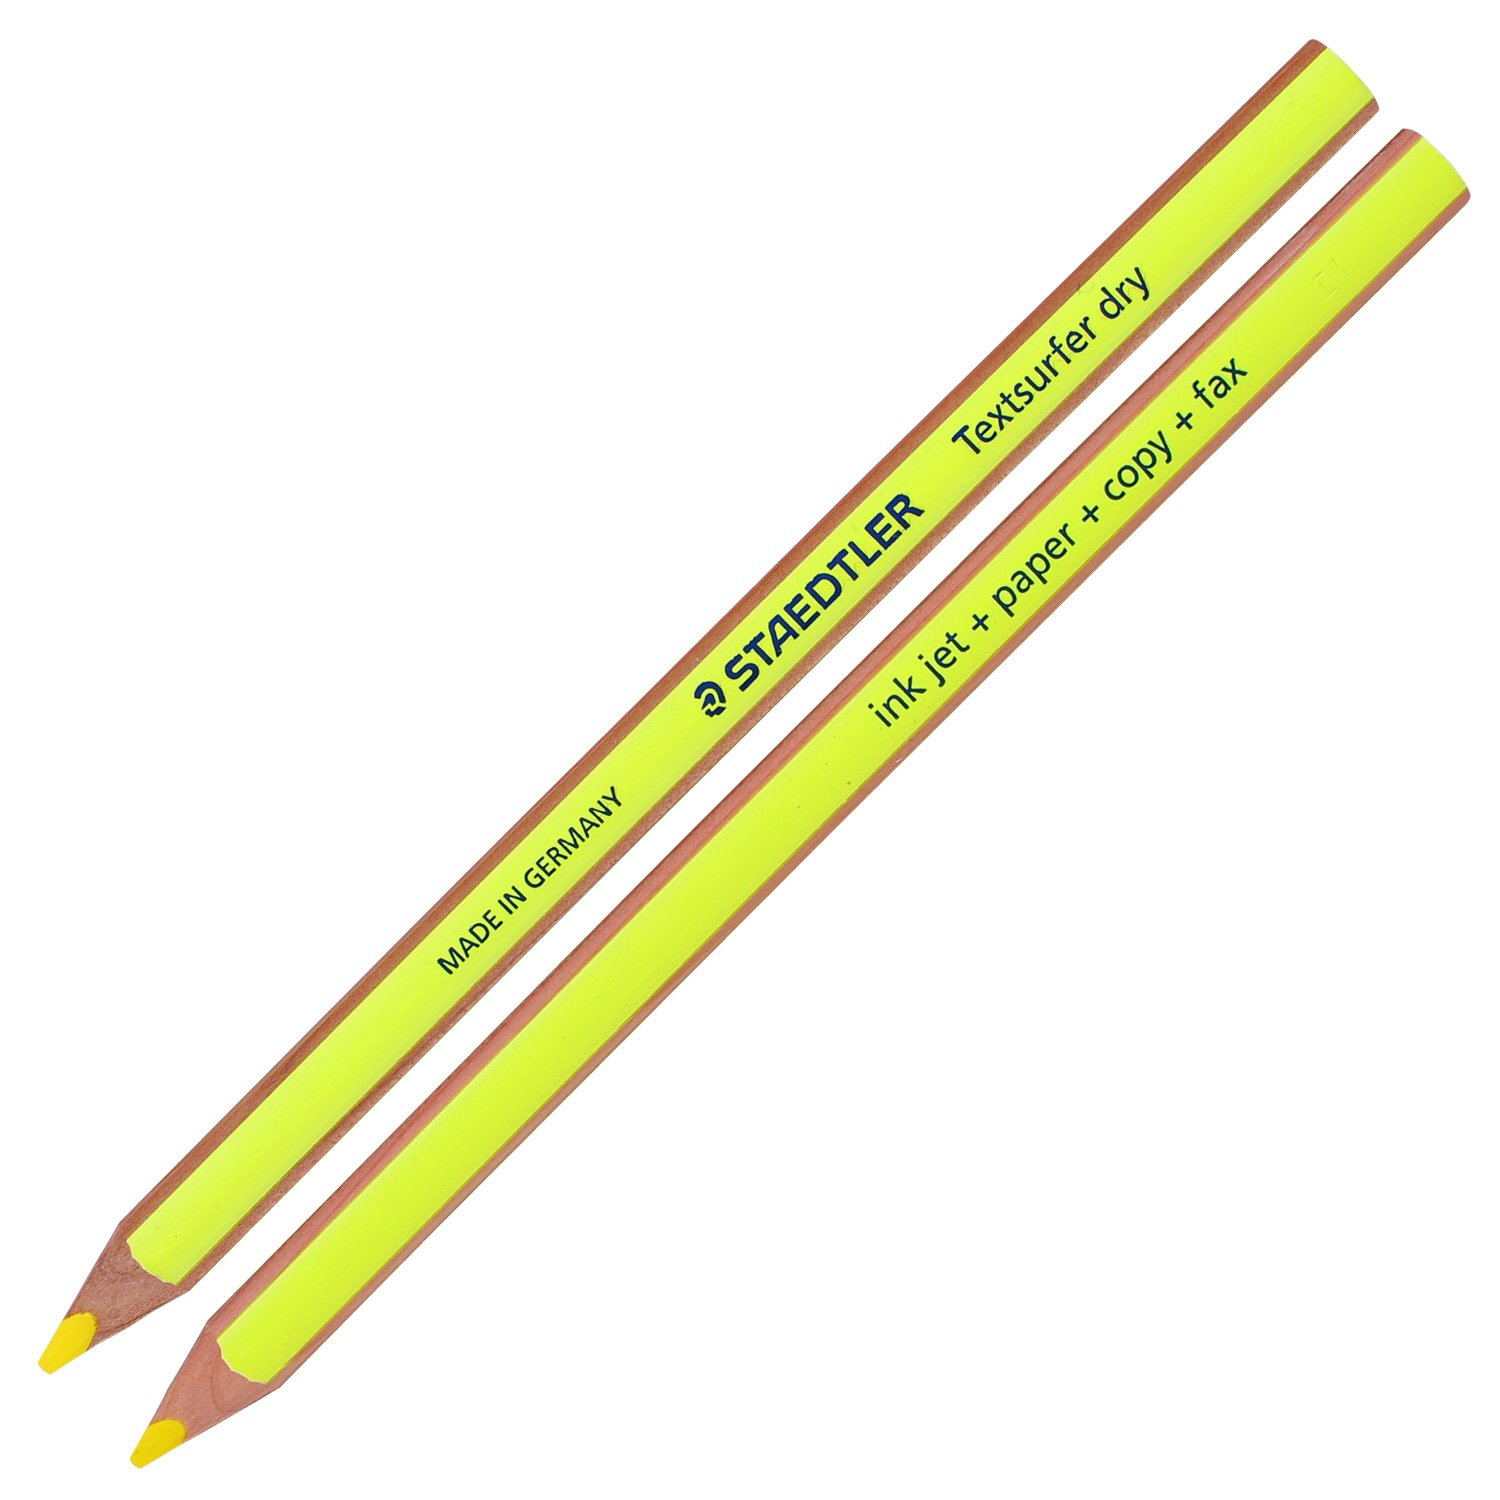 Amazon com staedtler textsurfer dry highlighter pencil 128 64 drawing for writing sketching inkjet paper copy faxpack of 4 yellow 4 pencils